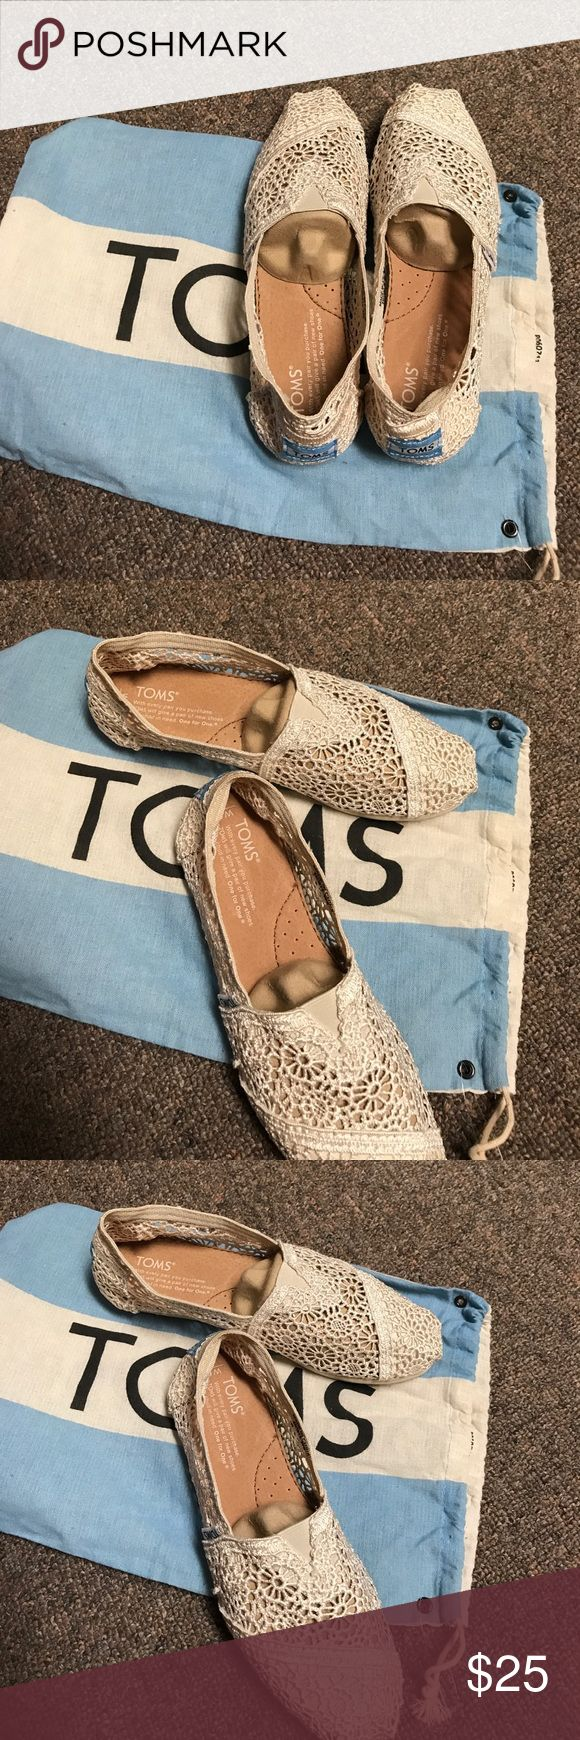 TOMS TOMS shoes 6W new comes in the toms bag TOMS Shoes Flats & Loafers